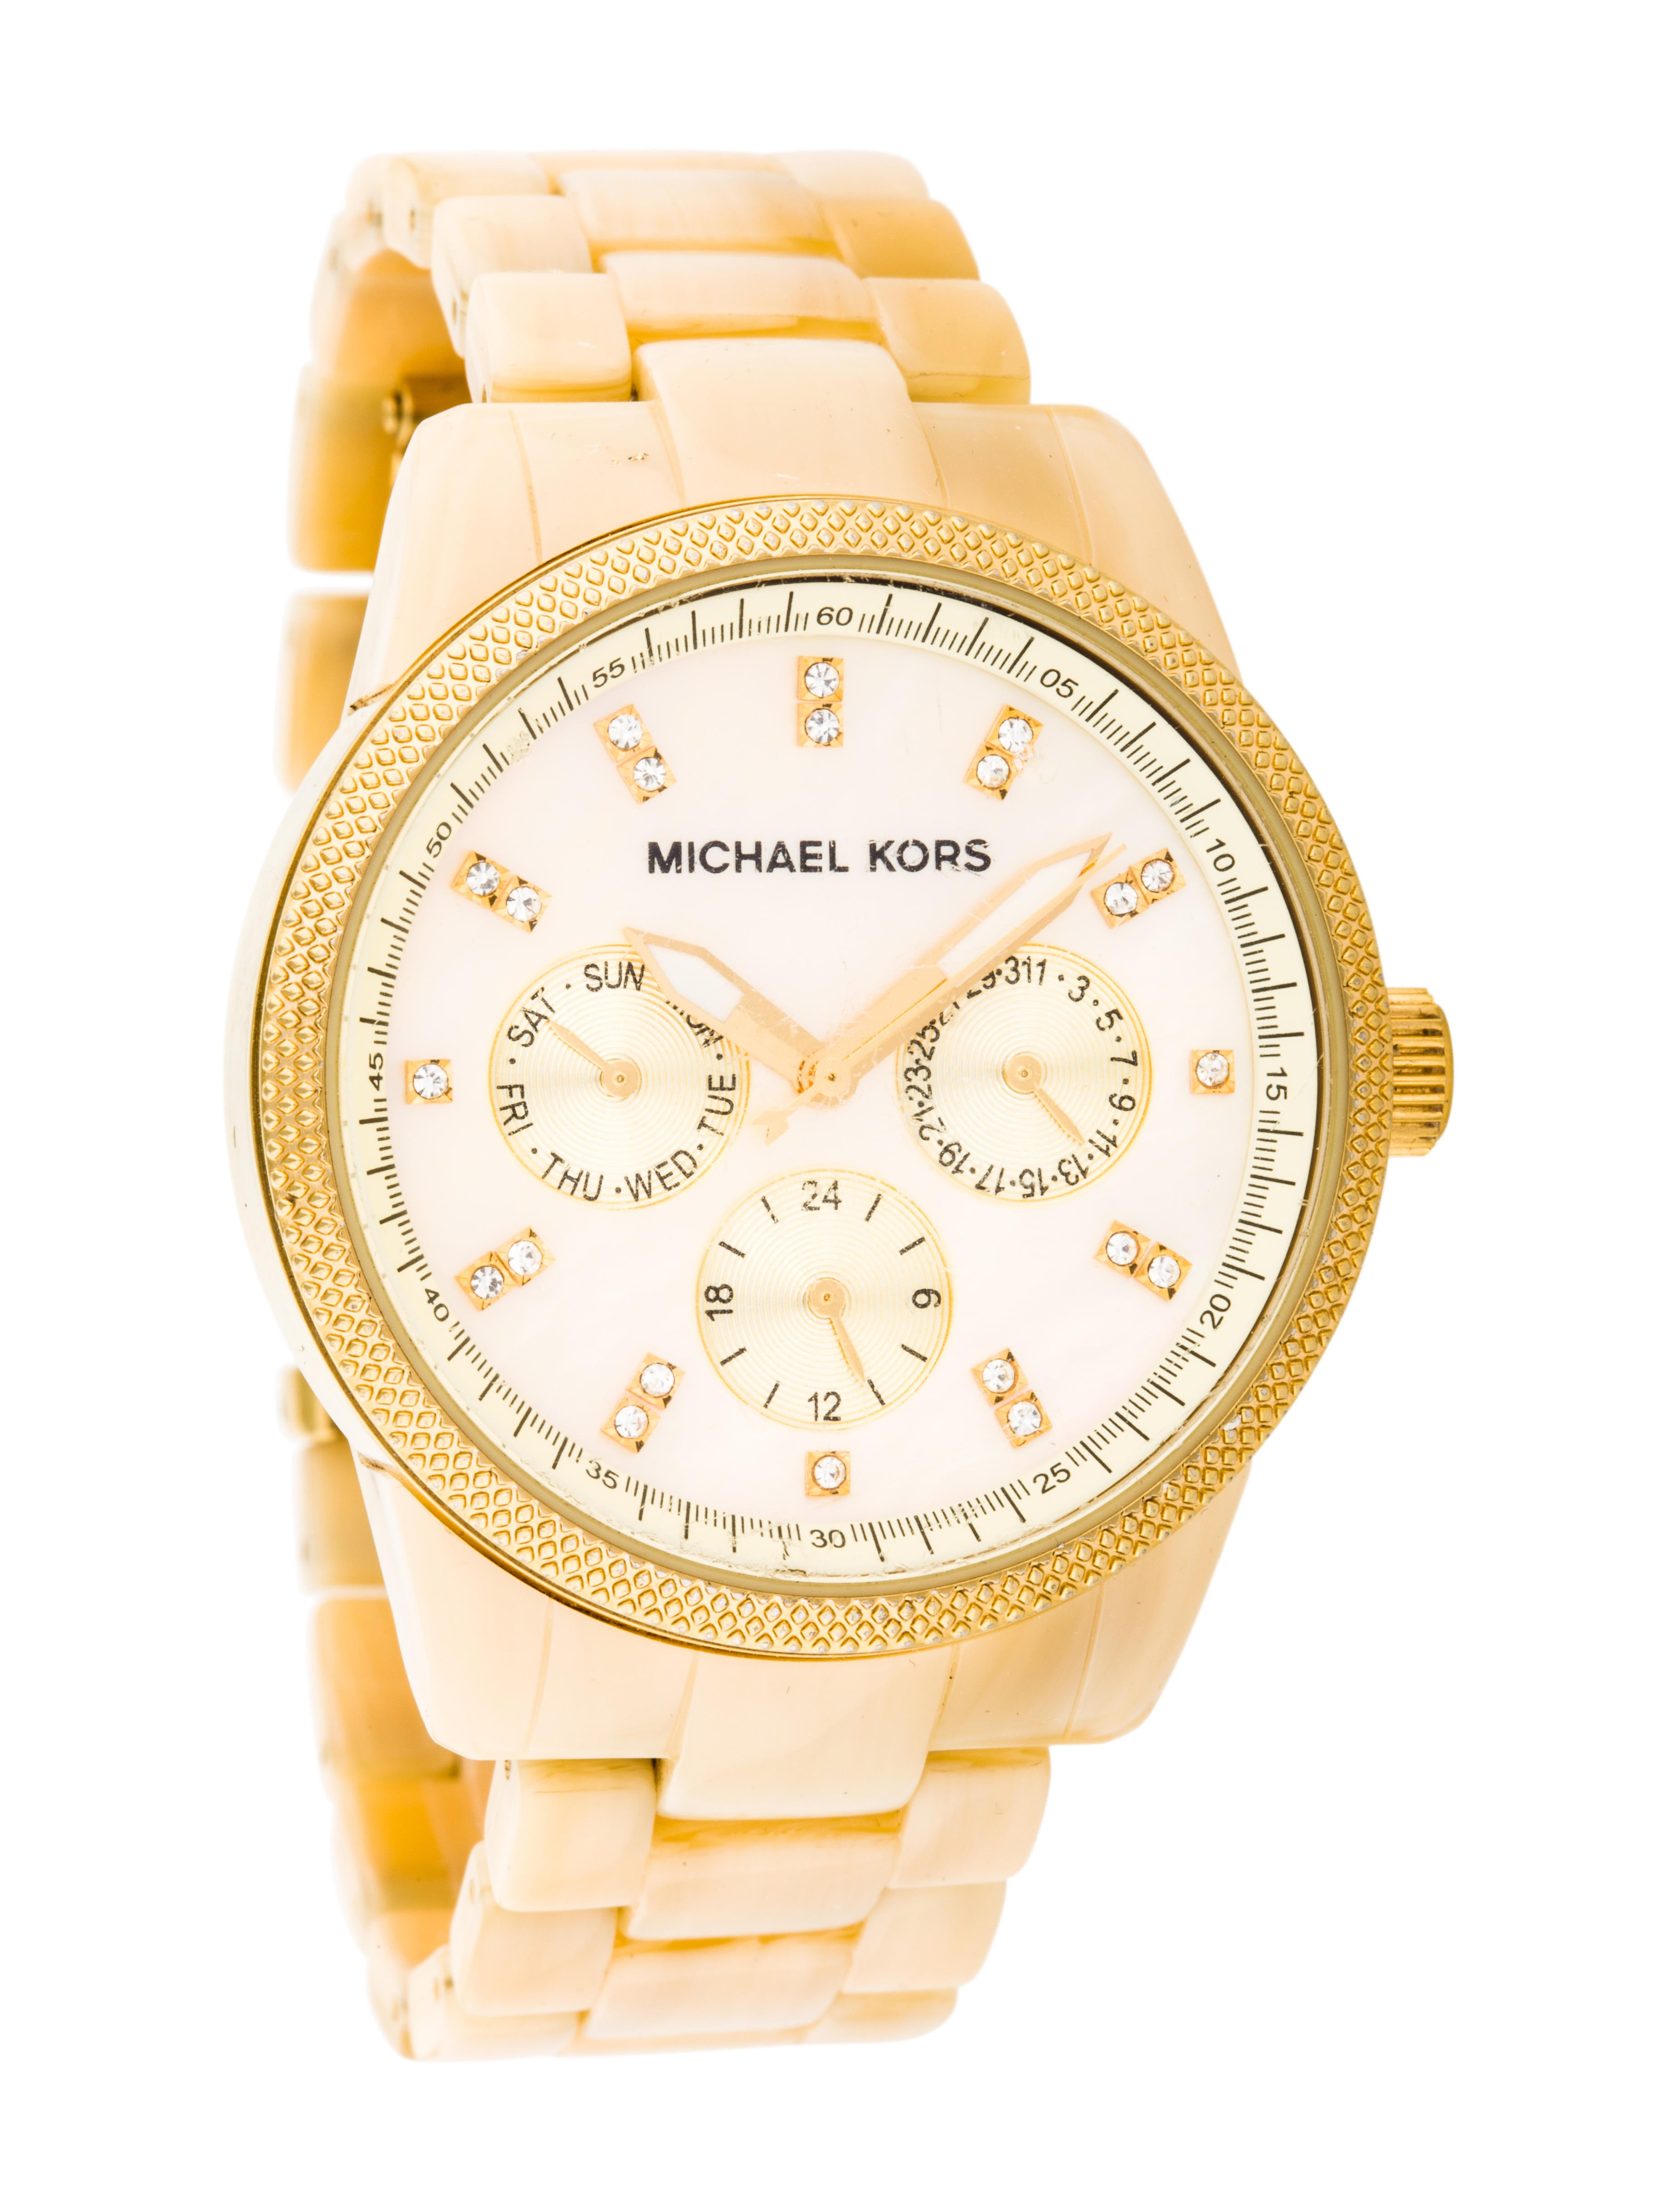 Michael Kors MK Instructions Manual. lap (up to laps). 3. Press D to display current set; press D again to switch to the next set. 4. Press and hold D 3 seconds to delete all stored data in the current set displayed. Hey there have the m k gold silver watch and date is set too far in advance (2days) . How can I change it back?